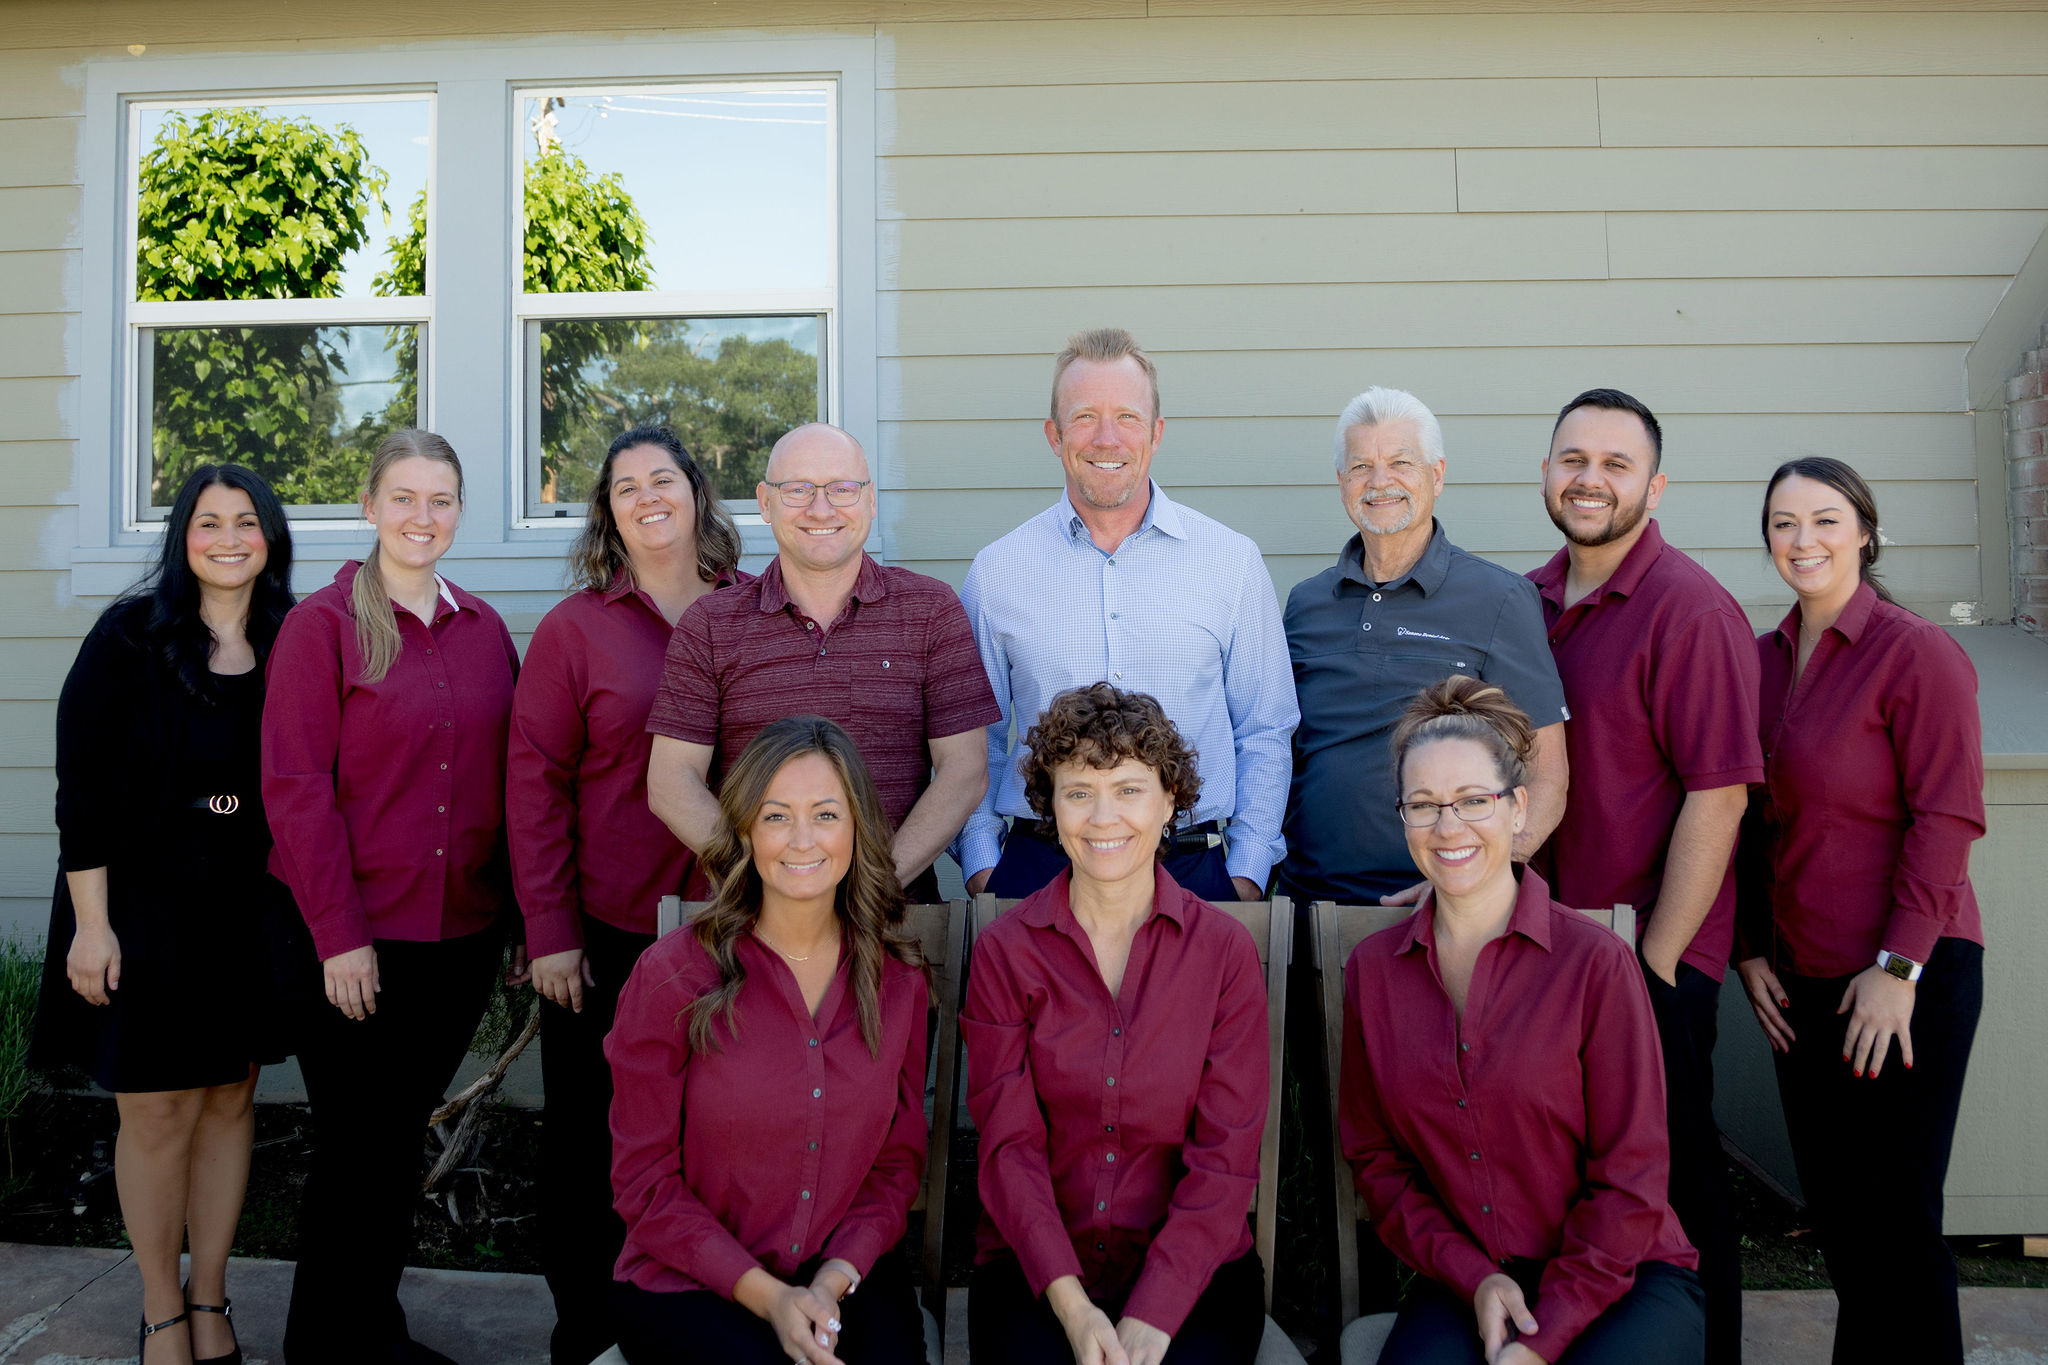 Sonora dentist, Dr. Jeff Berger and his team welcome you to schedule your first appointment with us soon.